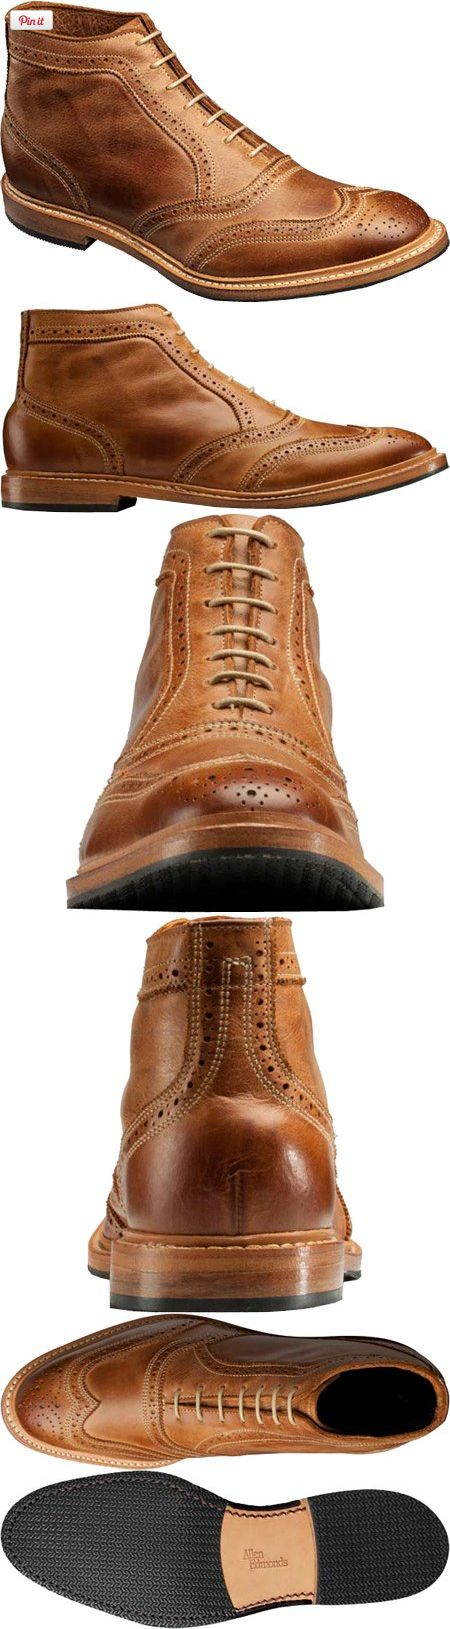 Allen Edmonds Men's Cronmok Tan Leather 9 B US, Enjoy understated style in the Allen-Edmonds Cronmok lace-up boot. The supple leather upper of this ruggedly-sophisticated men's shoe boasts perforation details for a cool look and feel. A durable syn..., #Apparel, #Boots